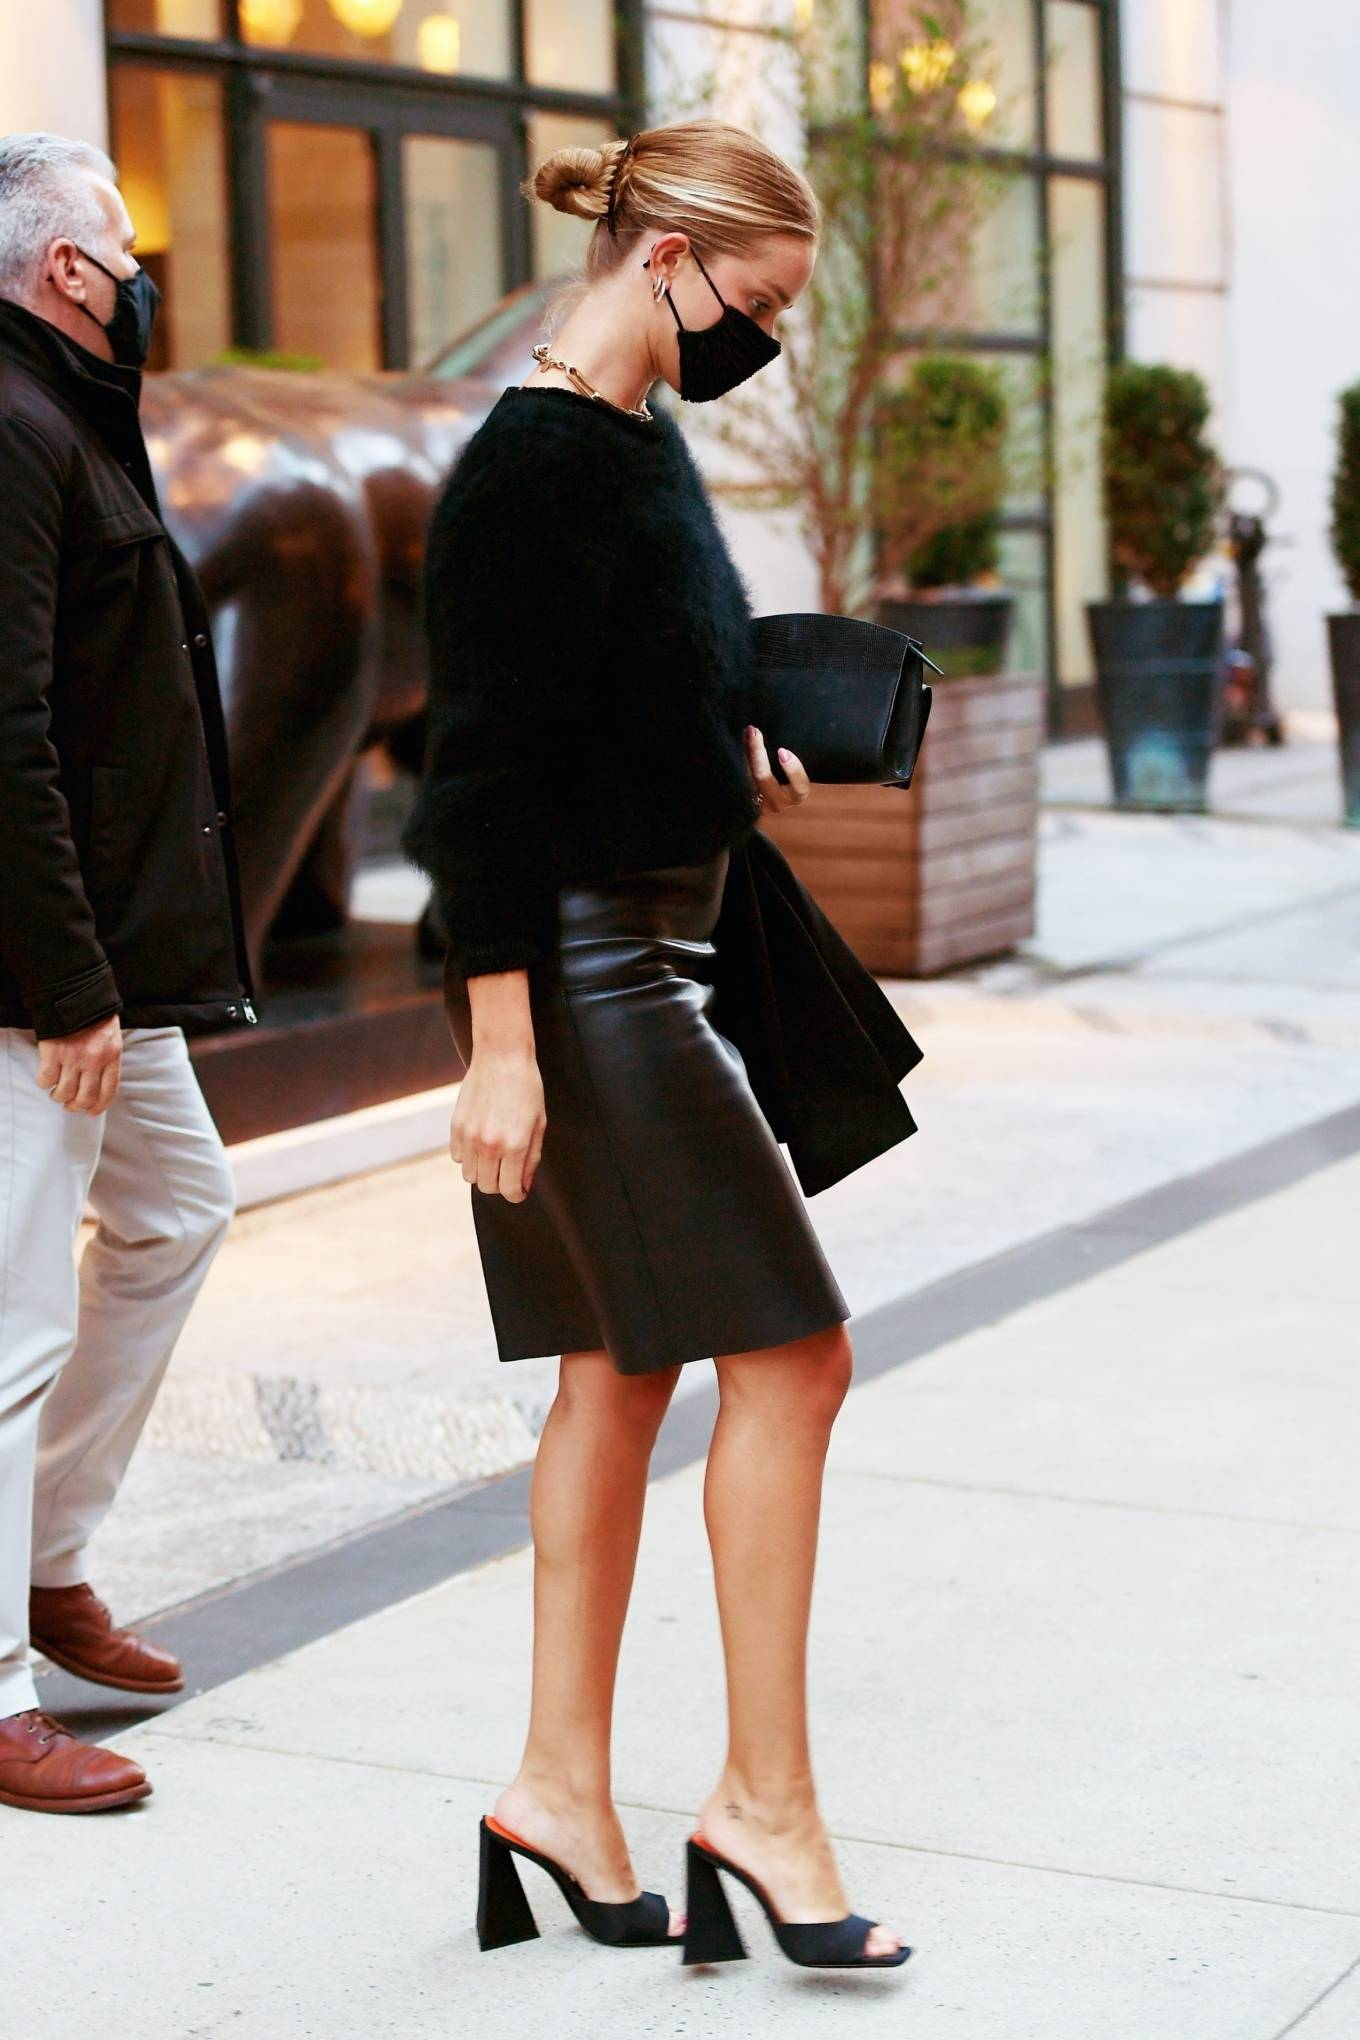 Rosie Huntington-Whiteley - Out in a black leather skirt in New York